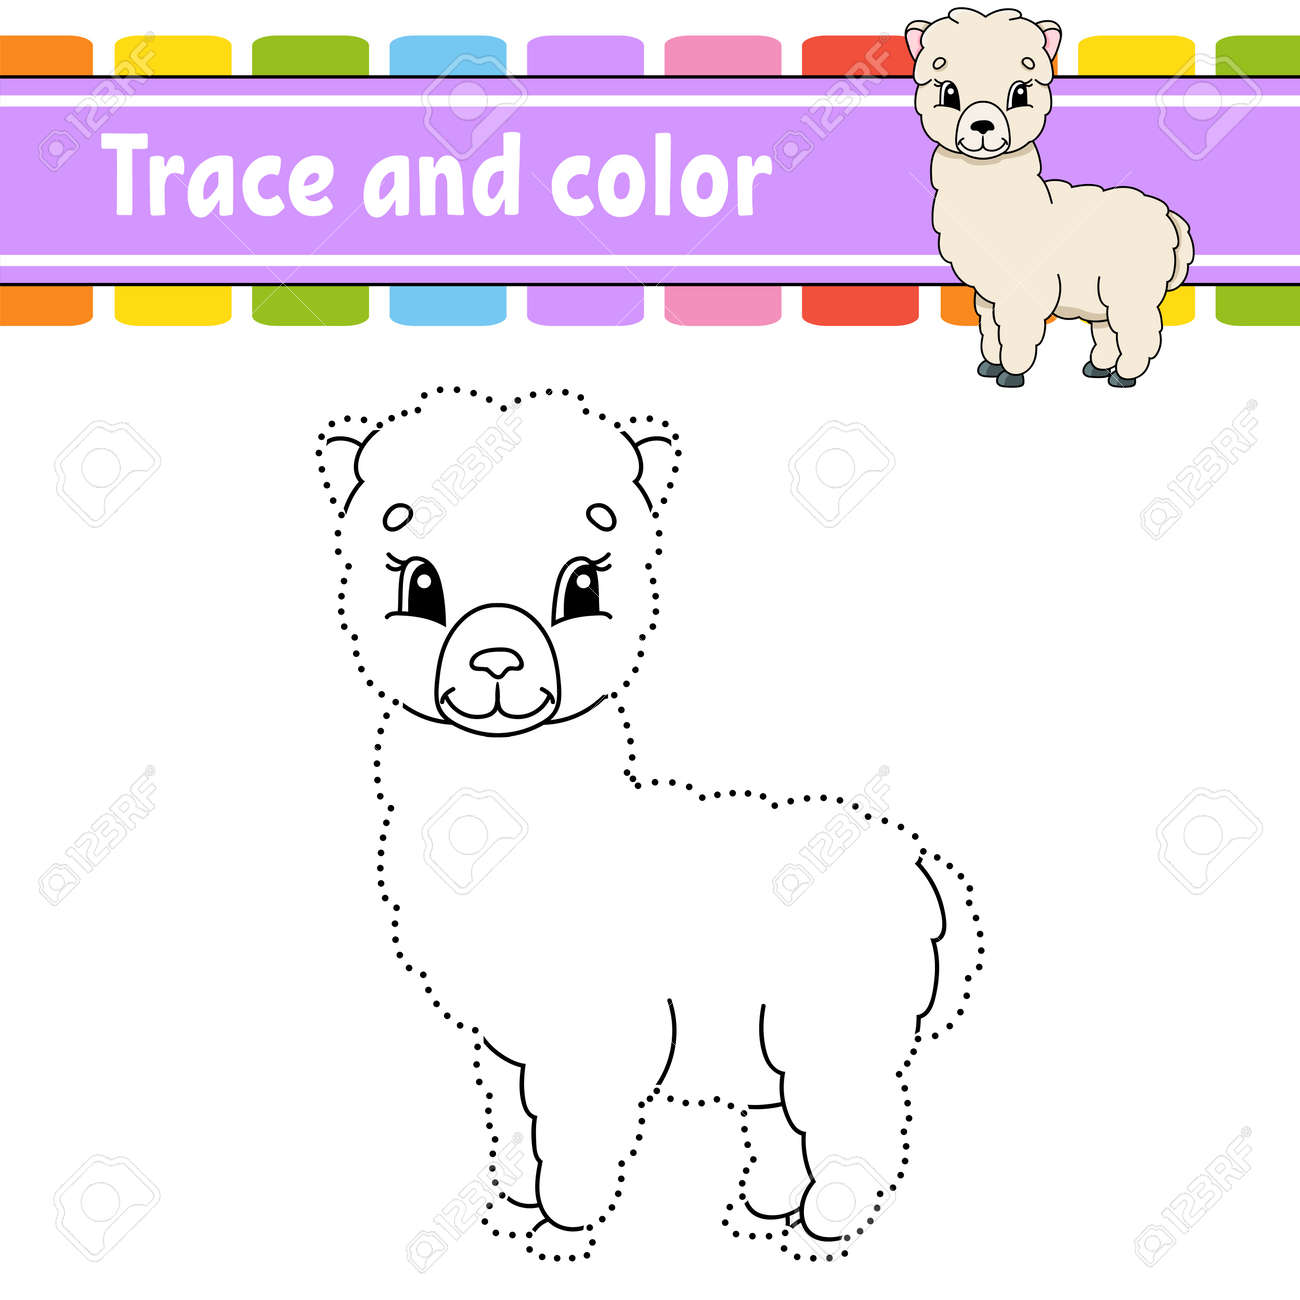 Dot to dot Dot to dot game. Draw a line. For kids. Activity worksheet. Coloring book. With answer. Cartoon character. Vector illustration. - 169599828